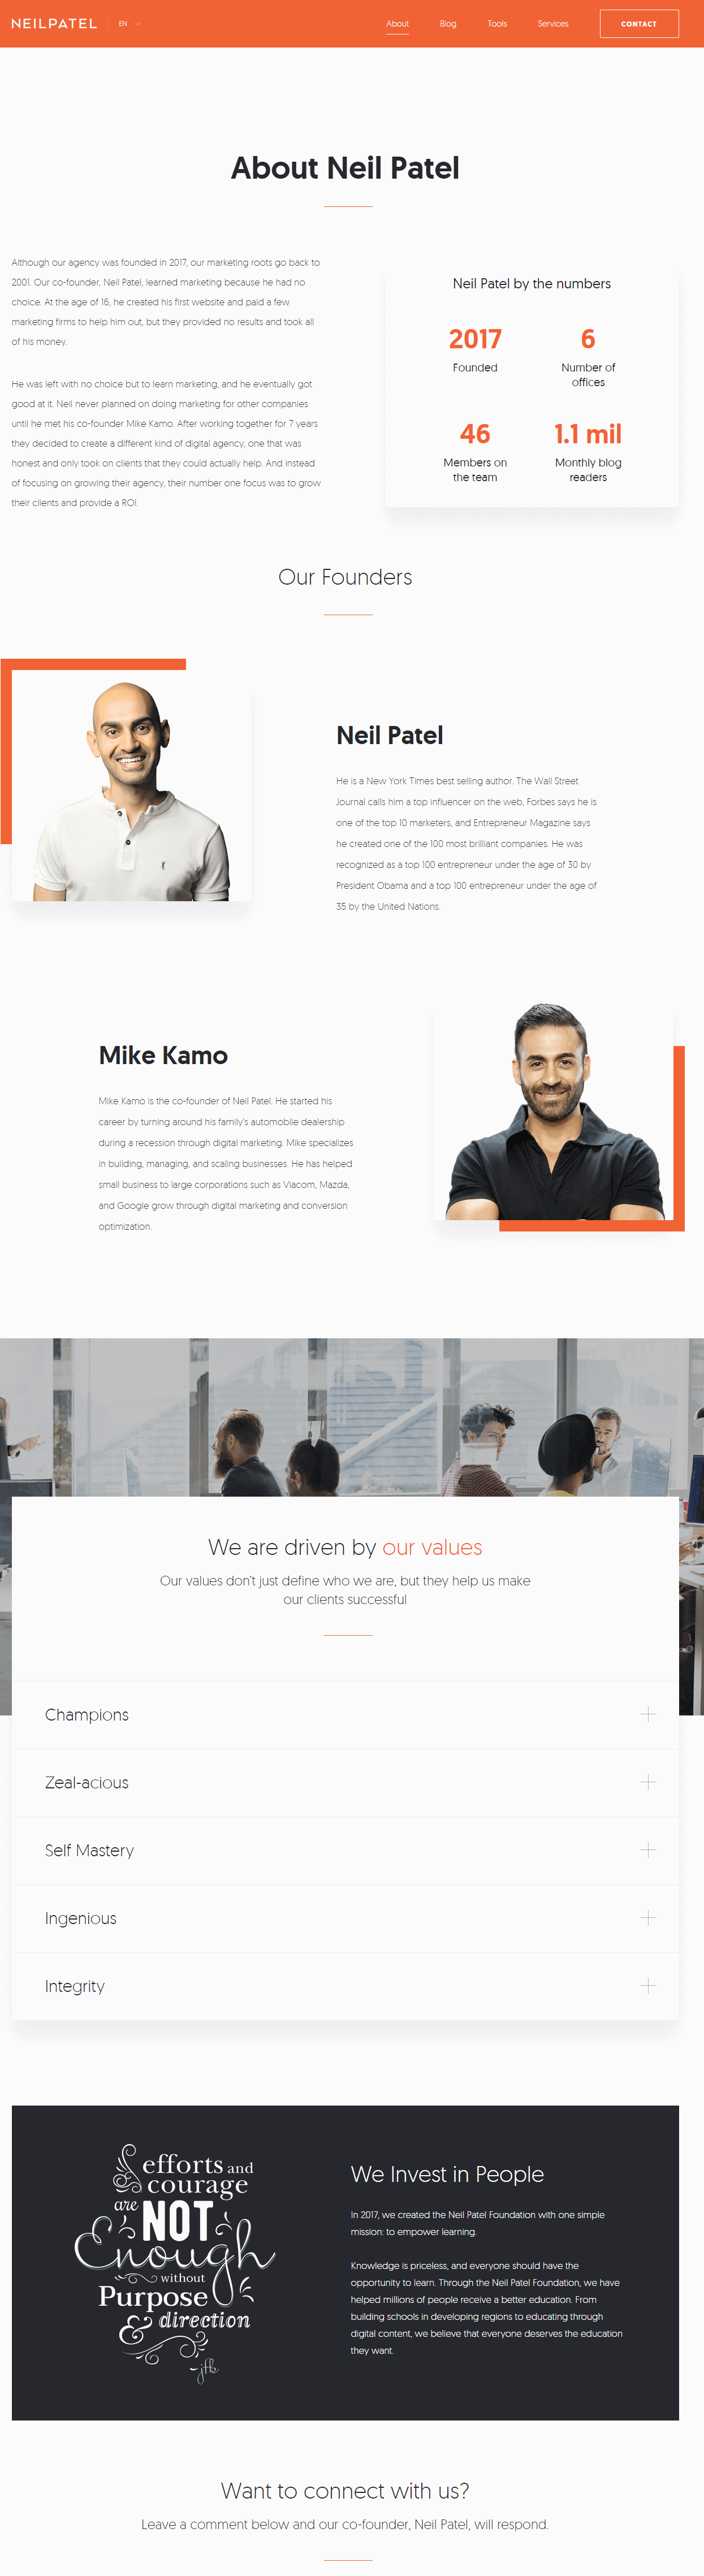 the about us section on neil patel's site